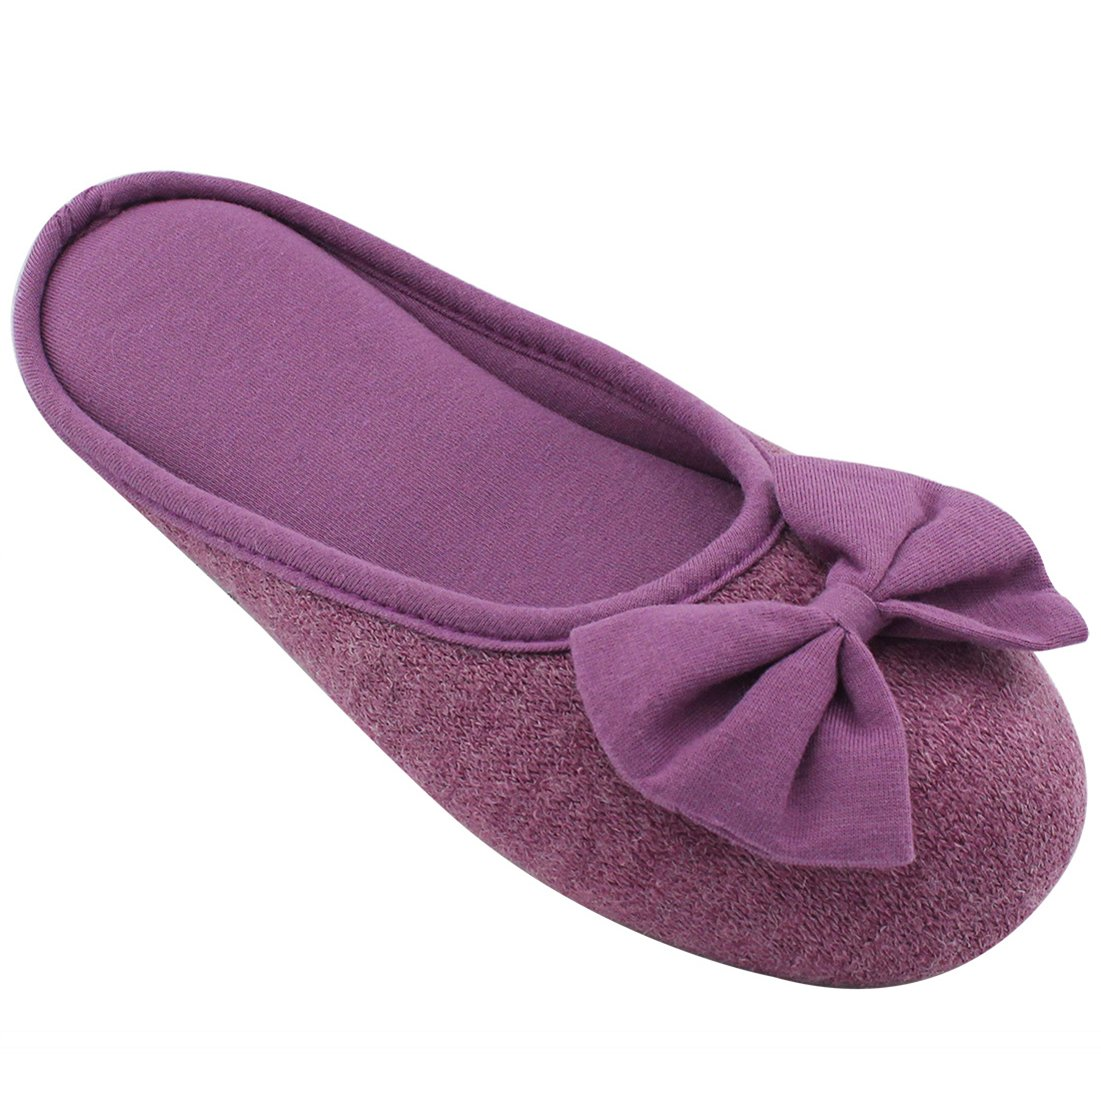 HomeTop Women's Cozy Cashmere Cotton Closed Toe House Slippers with Cute Bow Accent (Medium/7-8 B(M) US, Purple)